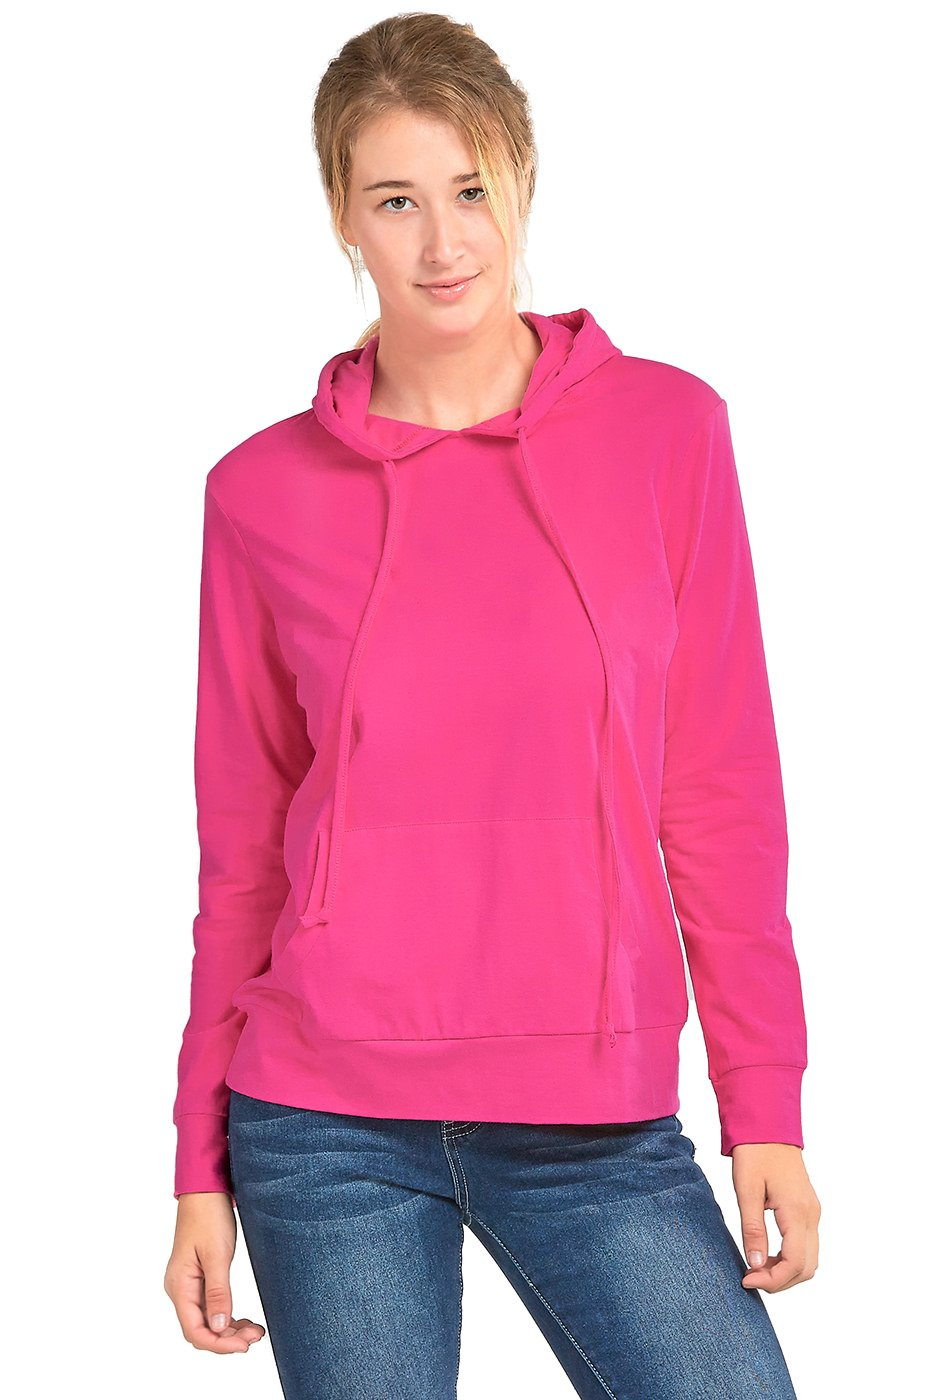 Sofra Women's Thin Cotton Pullover Hoodie Sweater (L, Fuchsia)